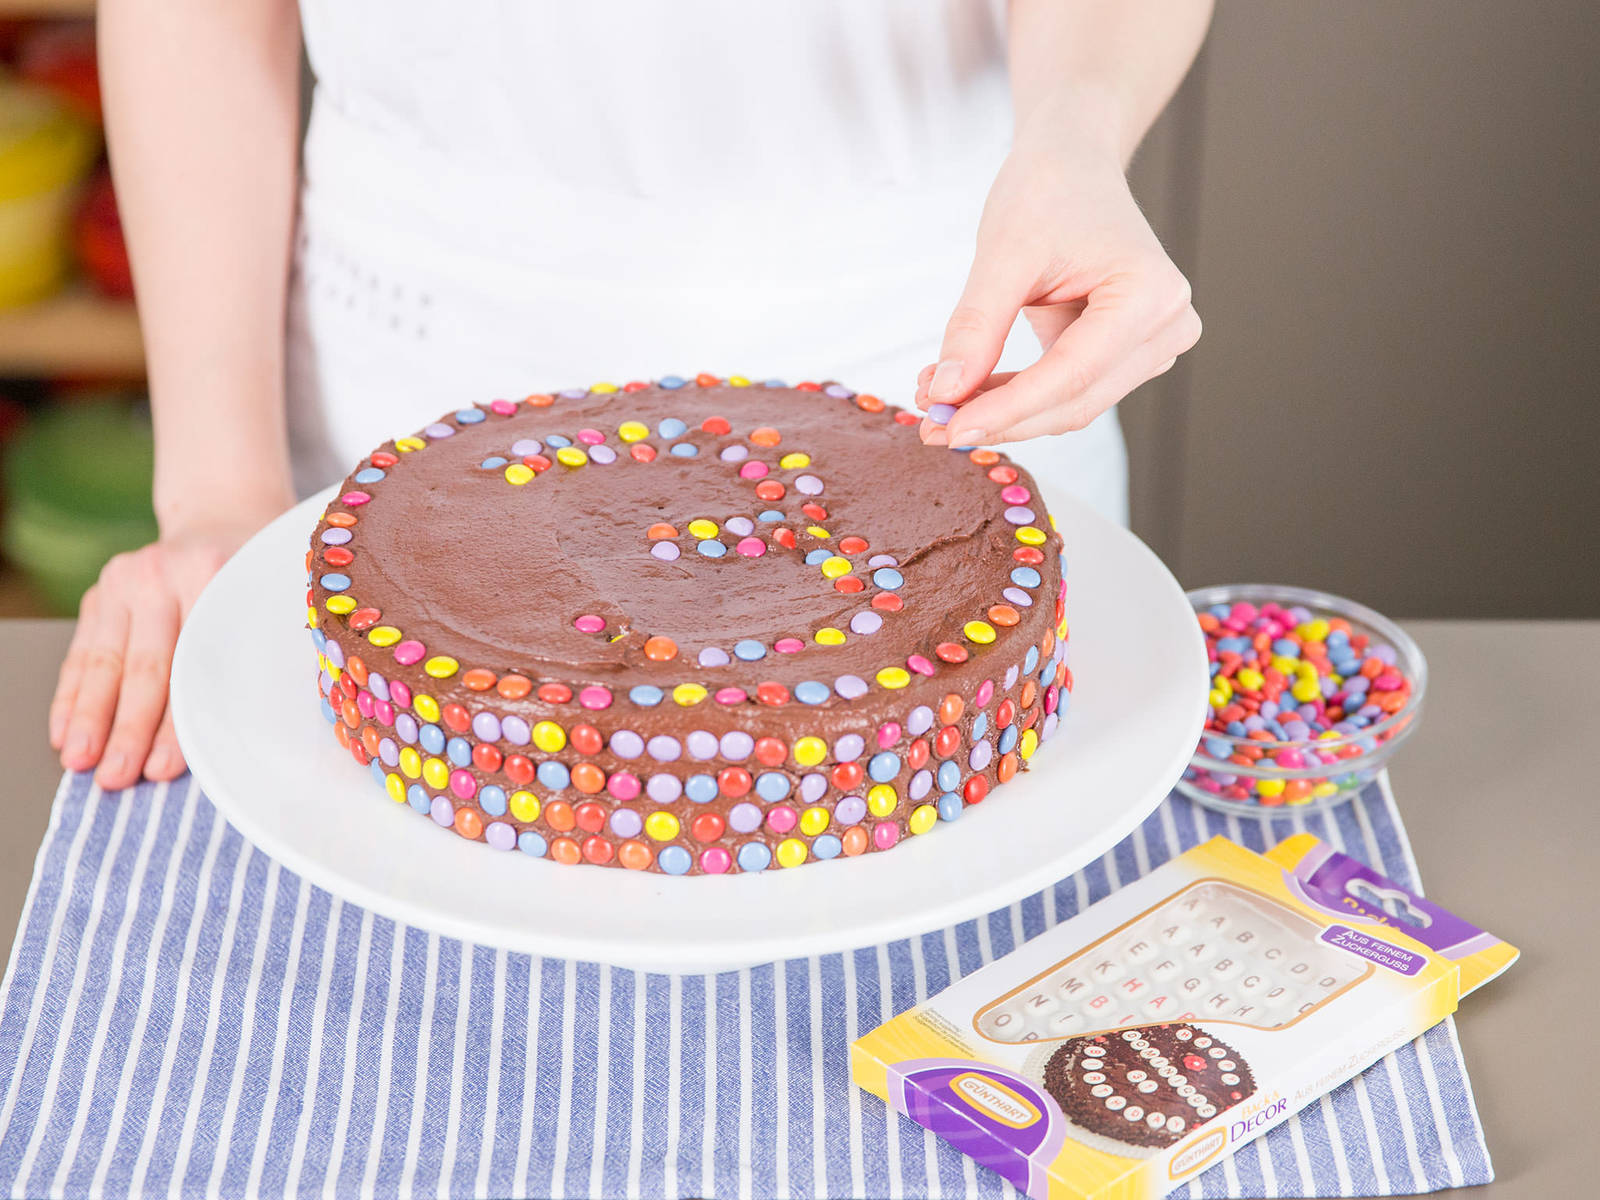 Frost cooled cake with buttercream and over in Smarties by gently pressing the candies into buttercream.